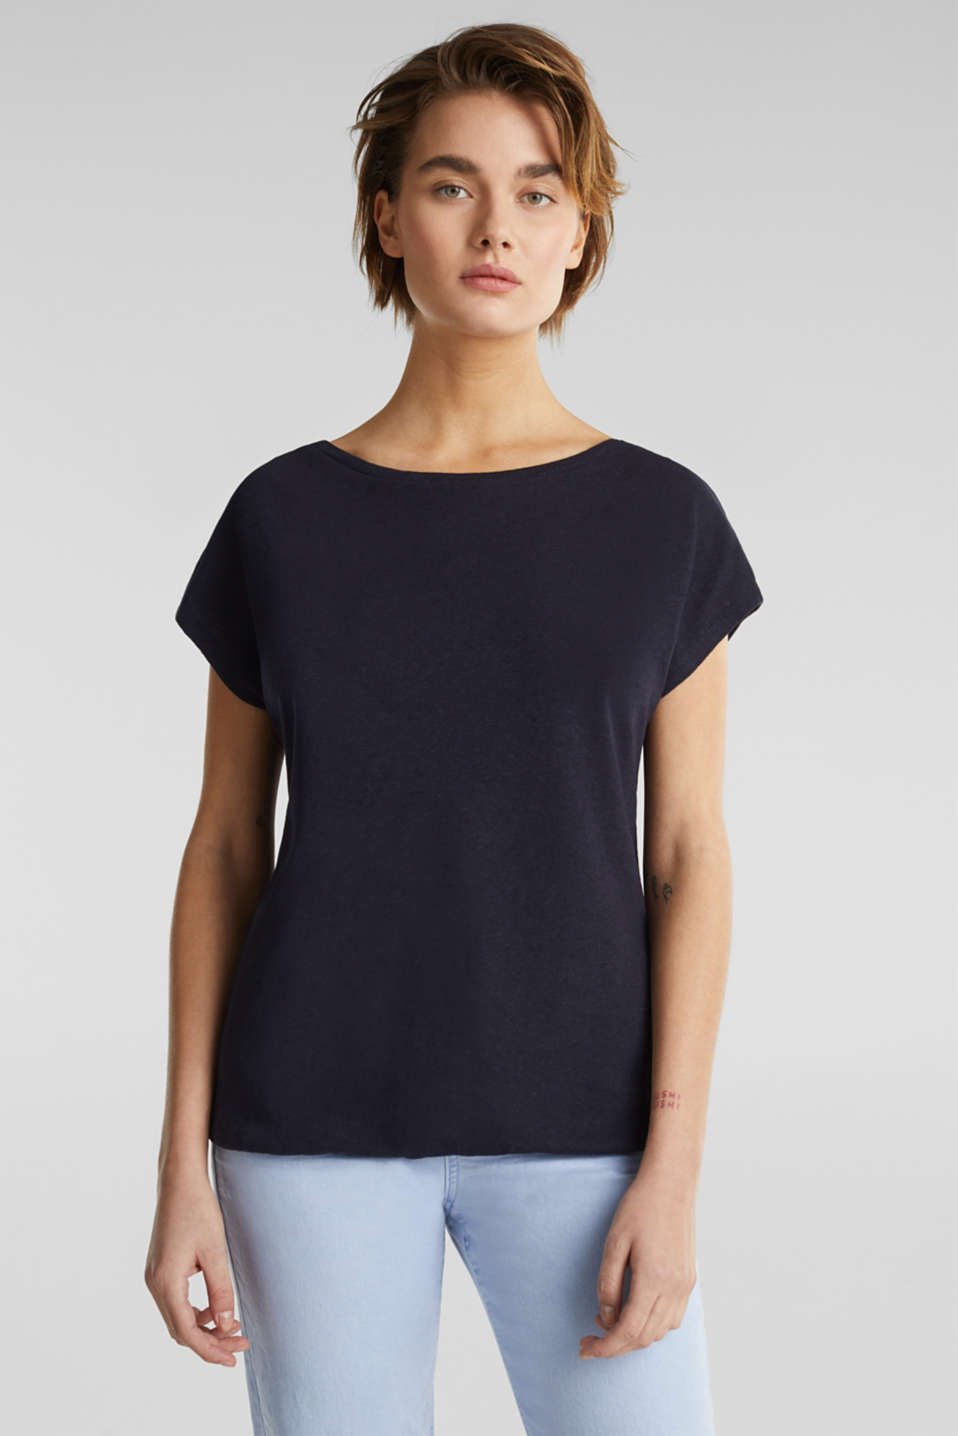 Esprit - Made of blended linen: top with an elasticated hem